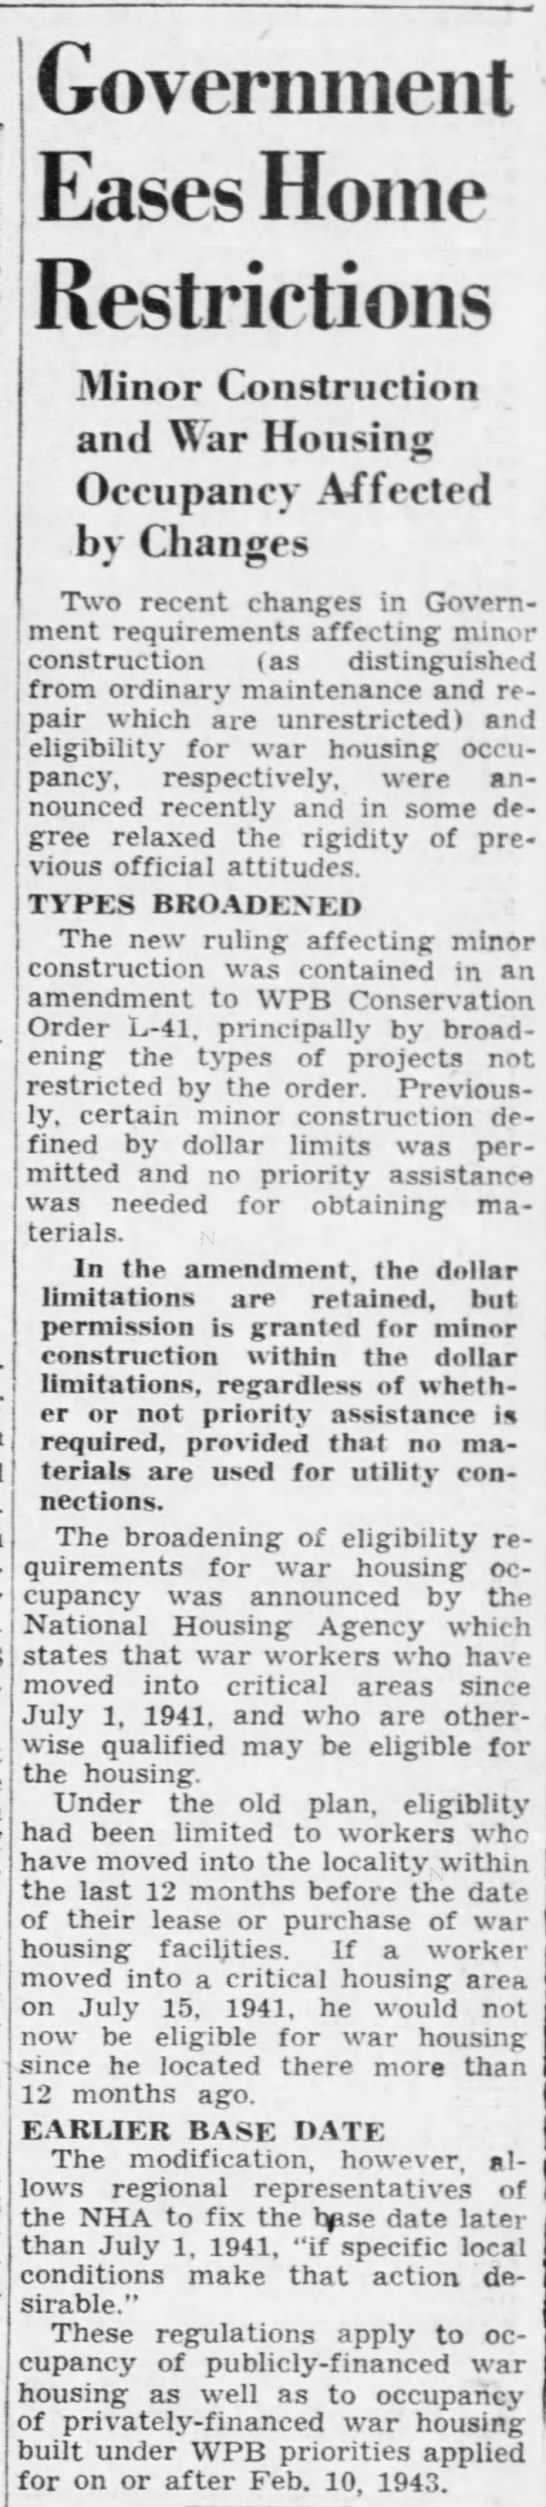 Government eases home restrictions, DFP 5-23-1943 p14 -